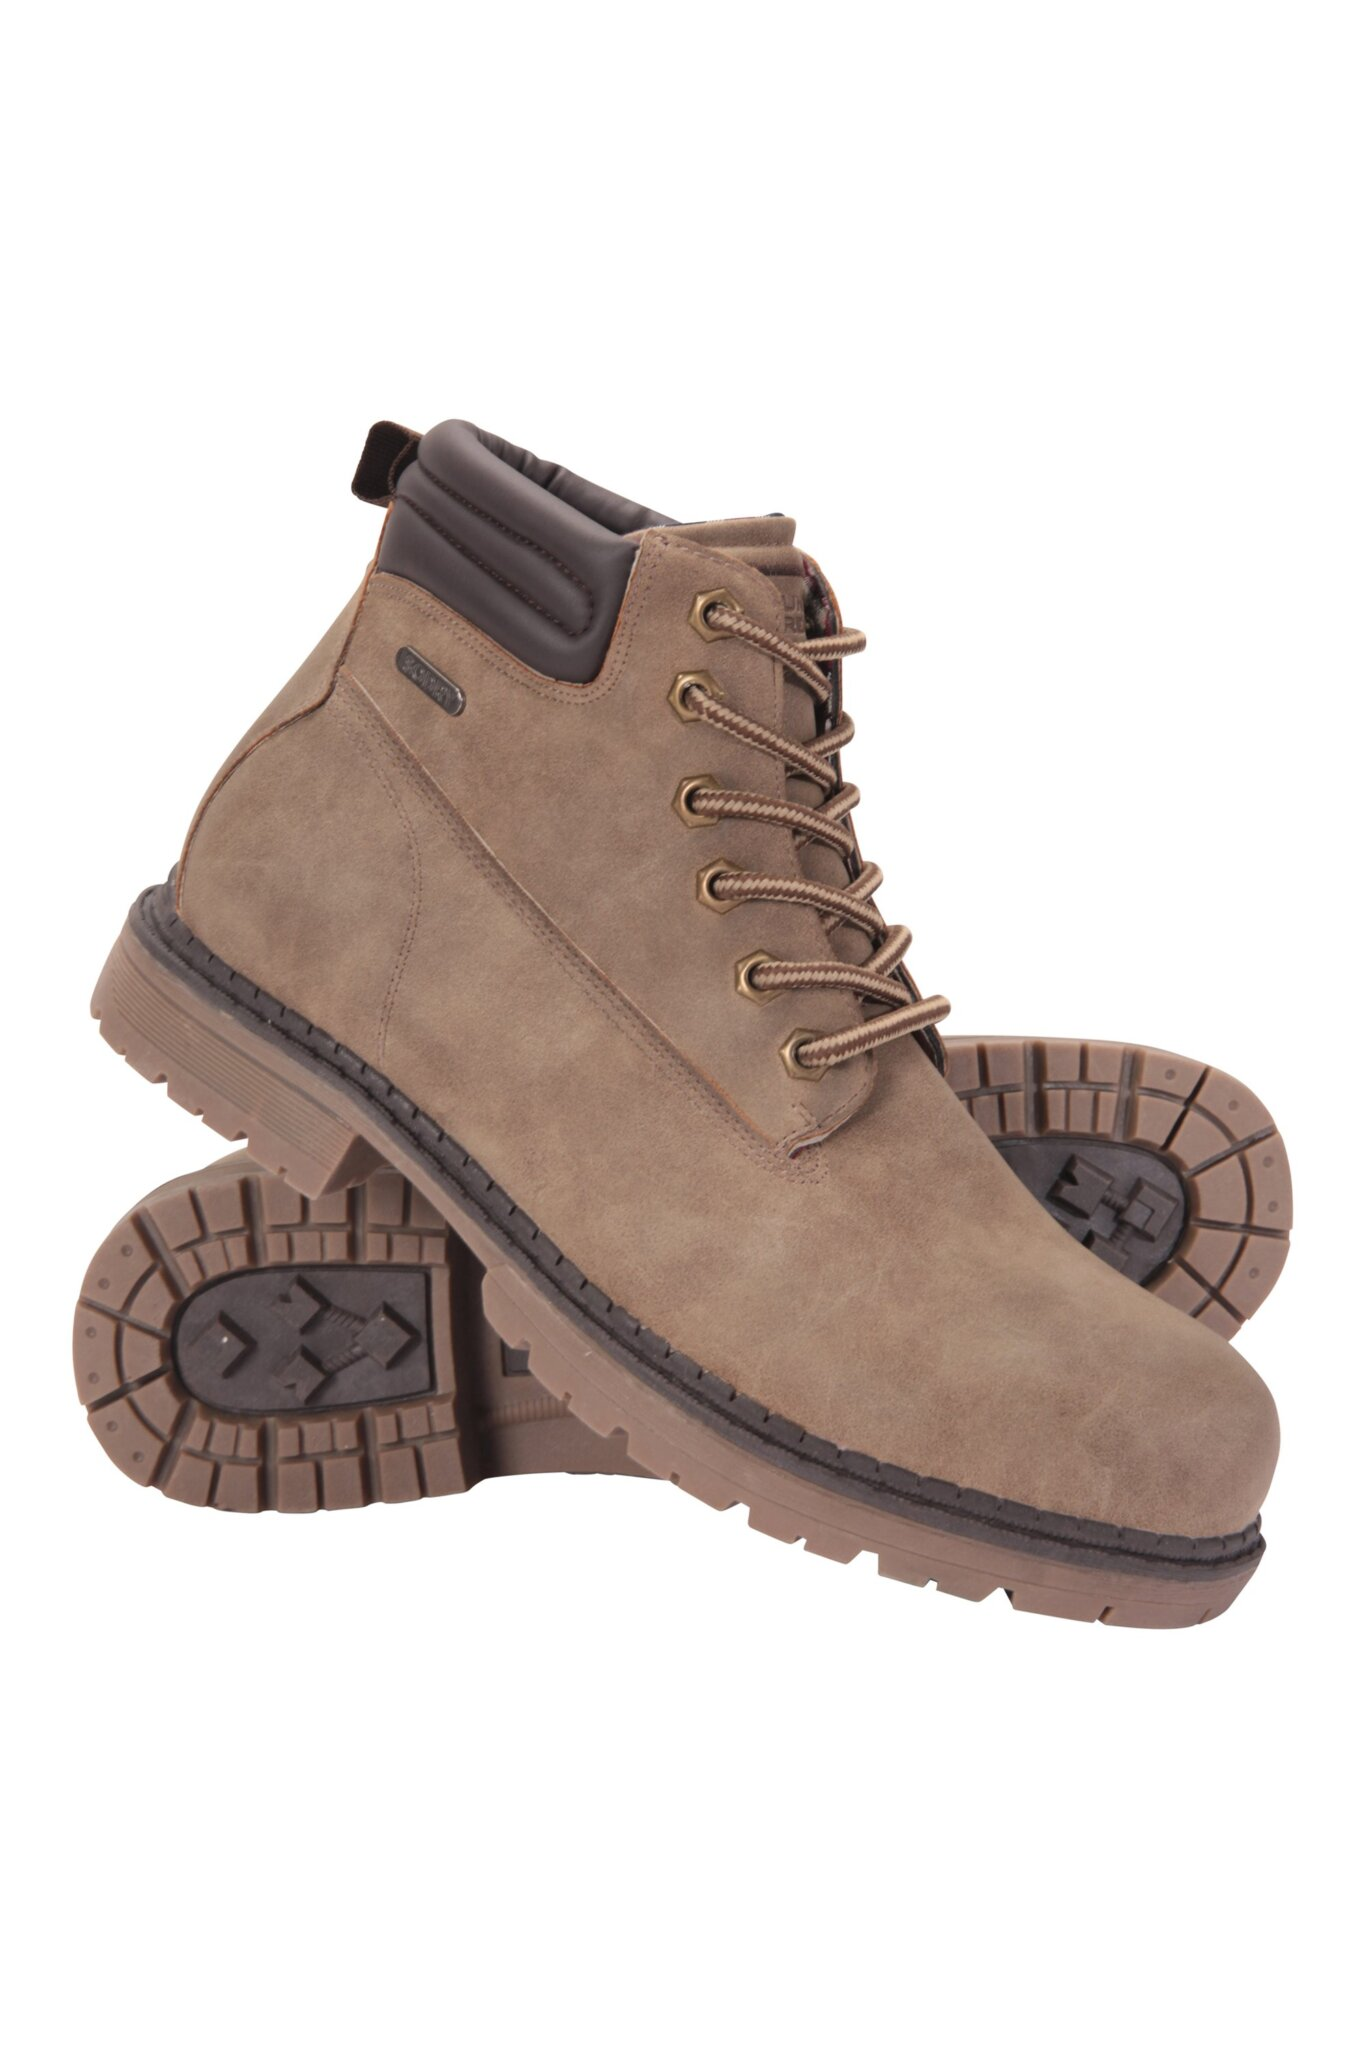 Gorge Winter Waterproof Mens Boots - Brown - Official Travel Store   Go  World Travel Magazine